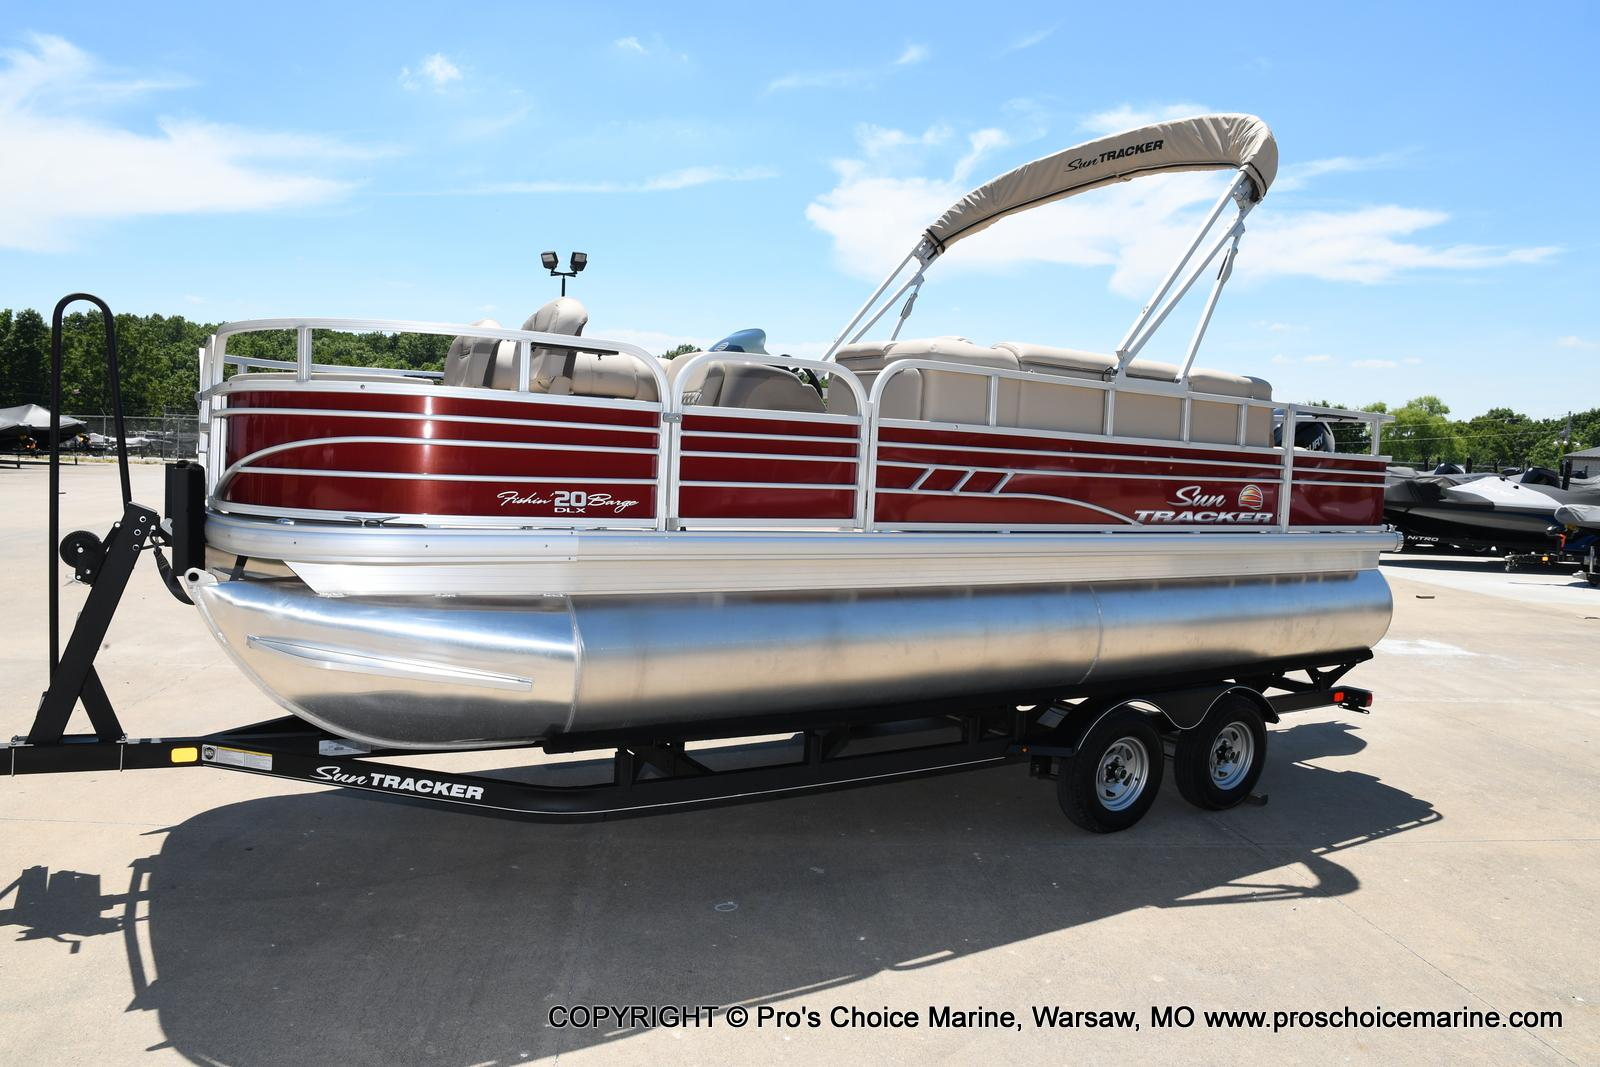 2021 Sun Tracker boat for sale, model of the boat is Fishin' Barge 20 DLX & Image # 23 of 50